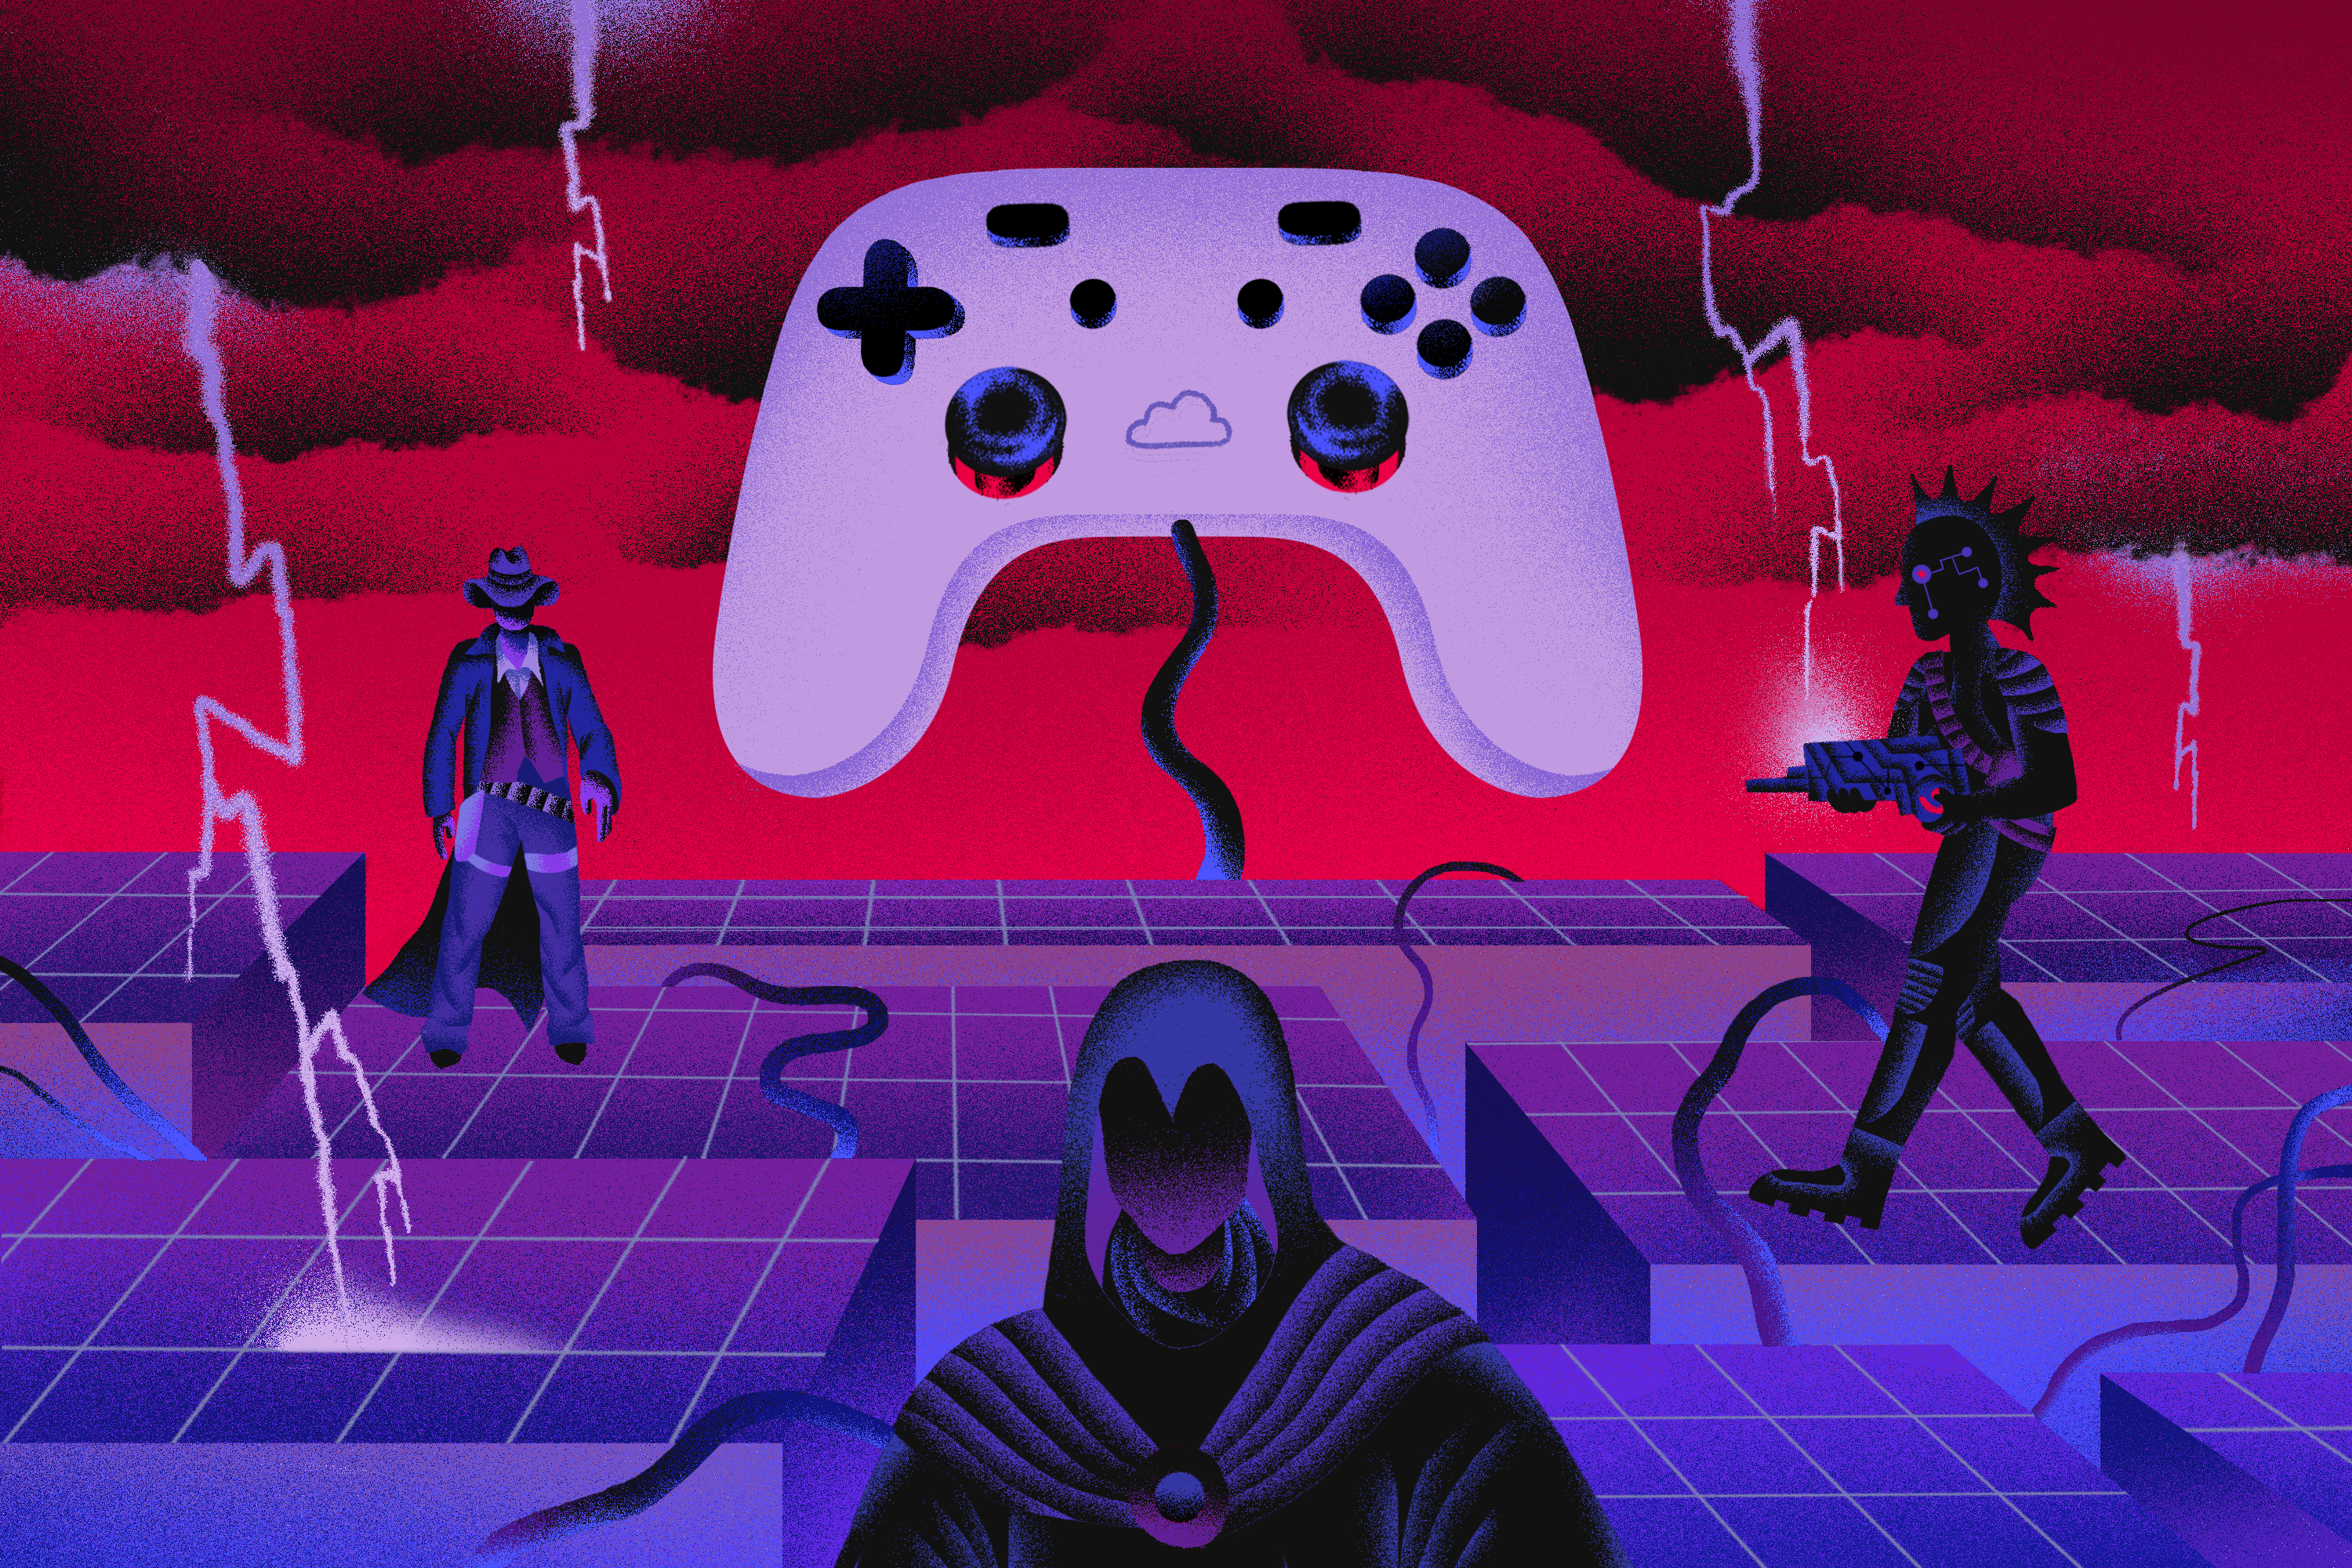 A large controller looms in the night sky. Lightning strikes in the distance and three video game characters lurk on various levels below the controller. Illustration.